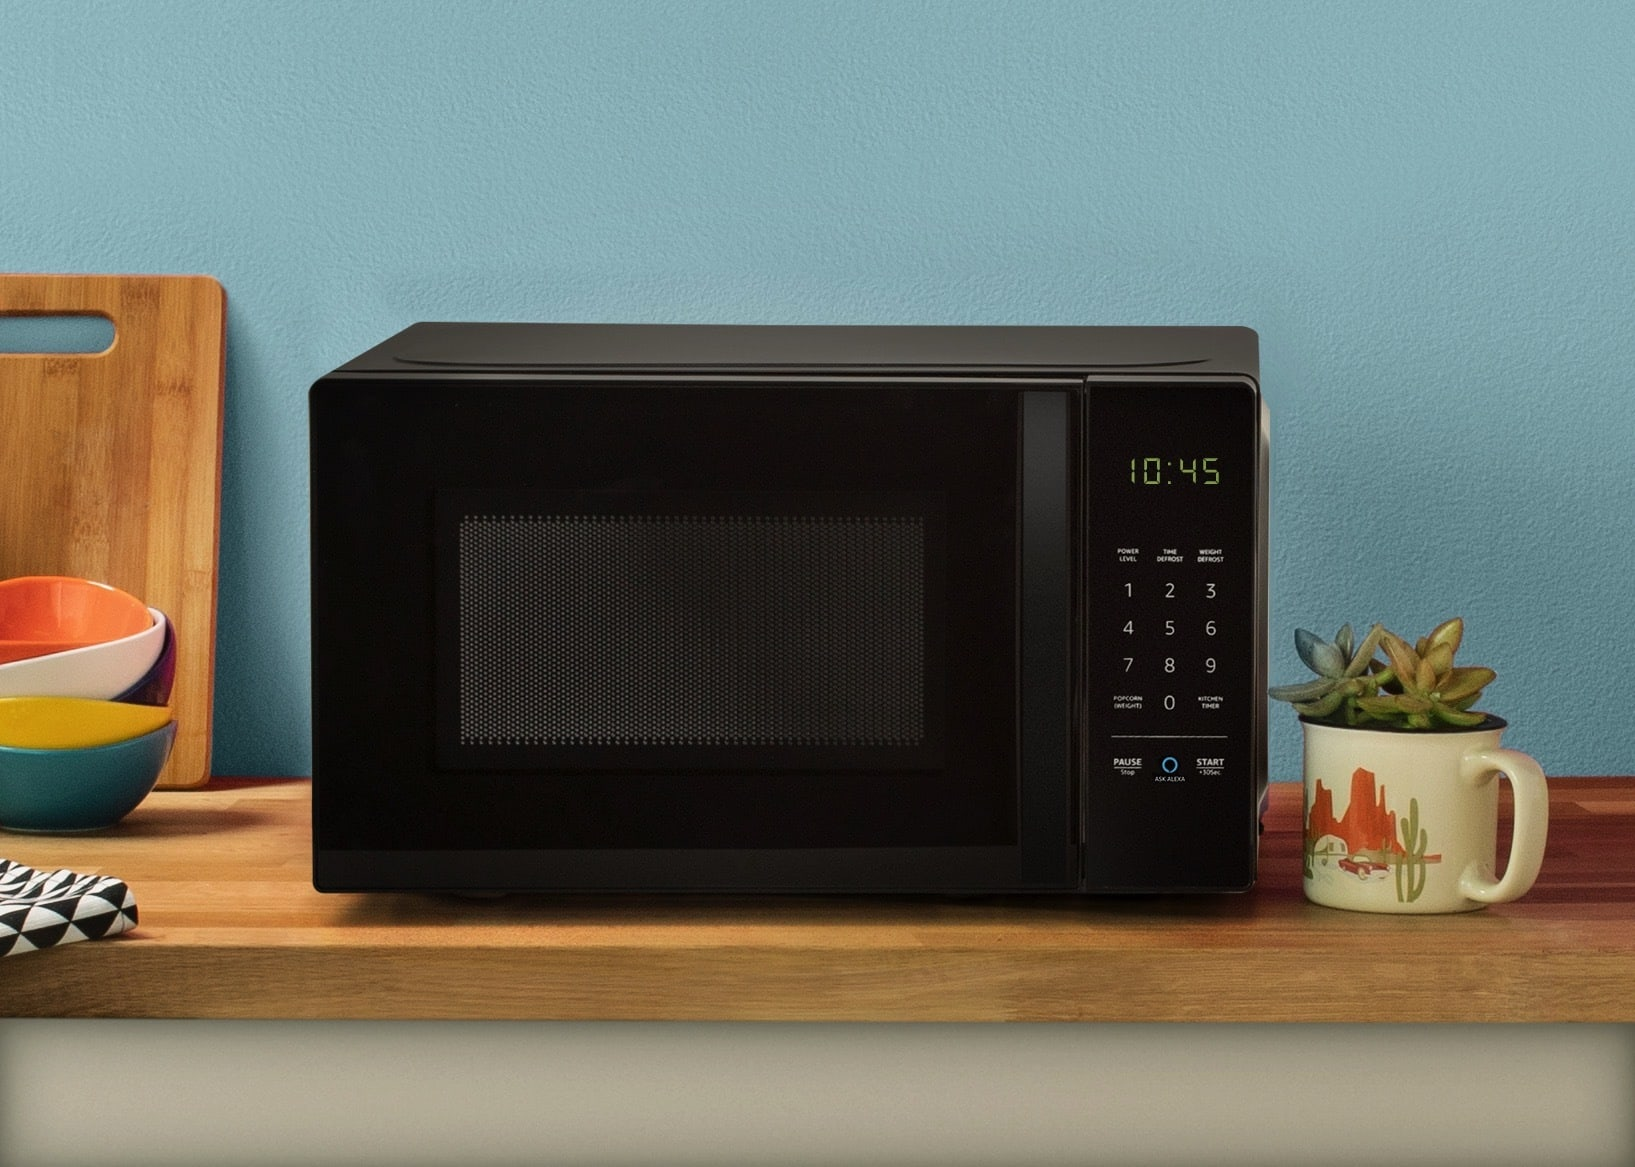 Amazon Pulls A WTF Move With Alexa Microwave And Echo Wall Clock